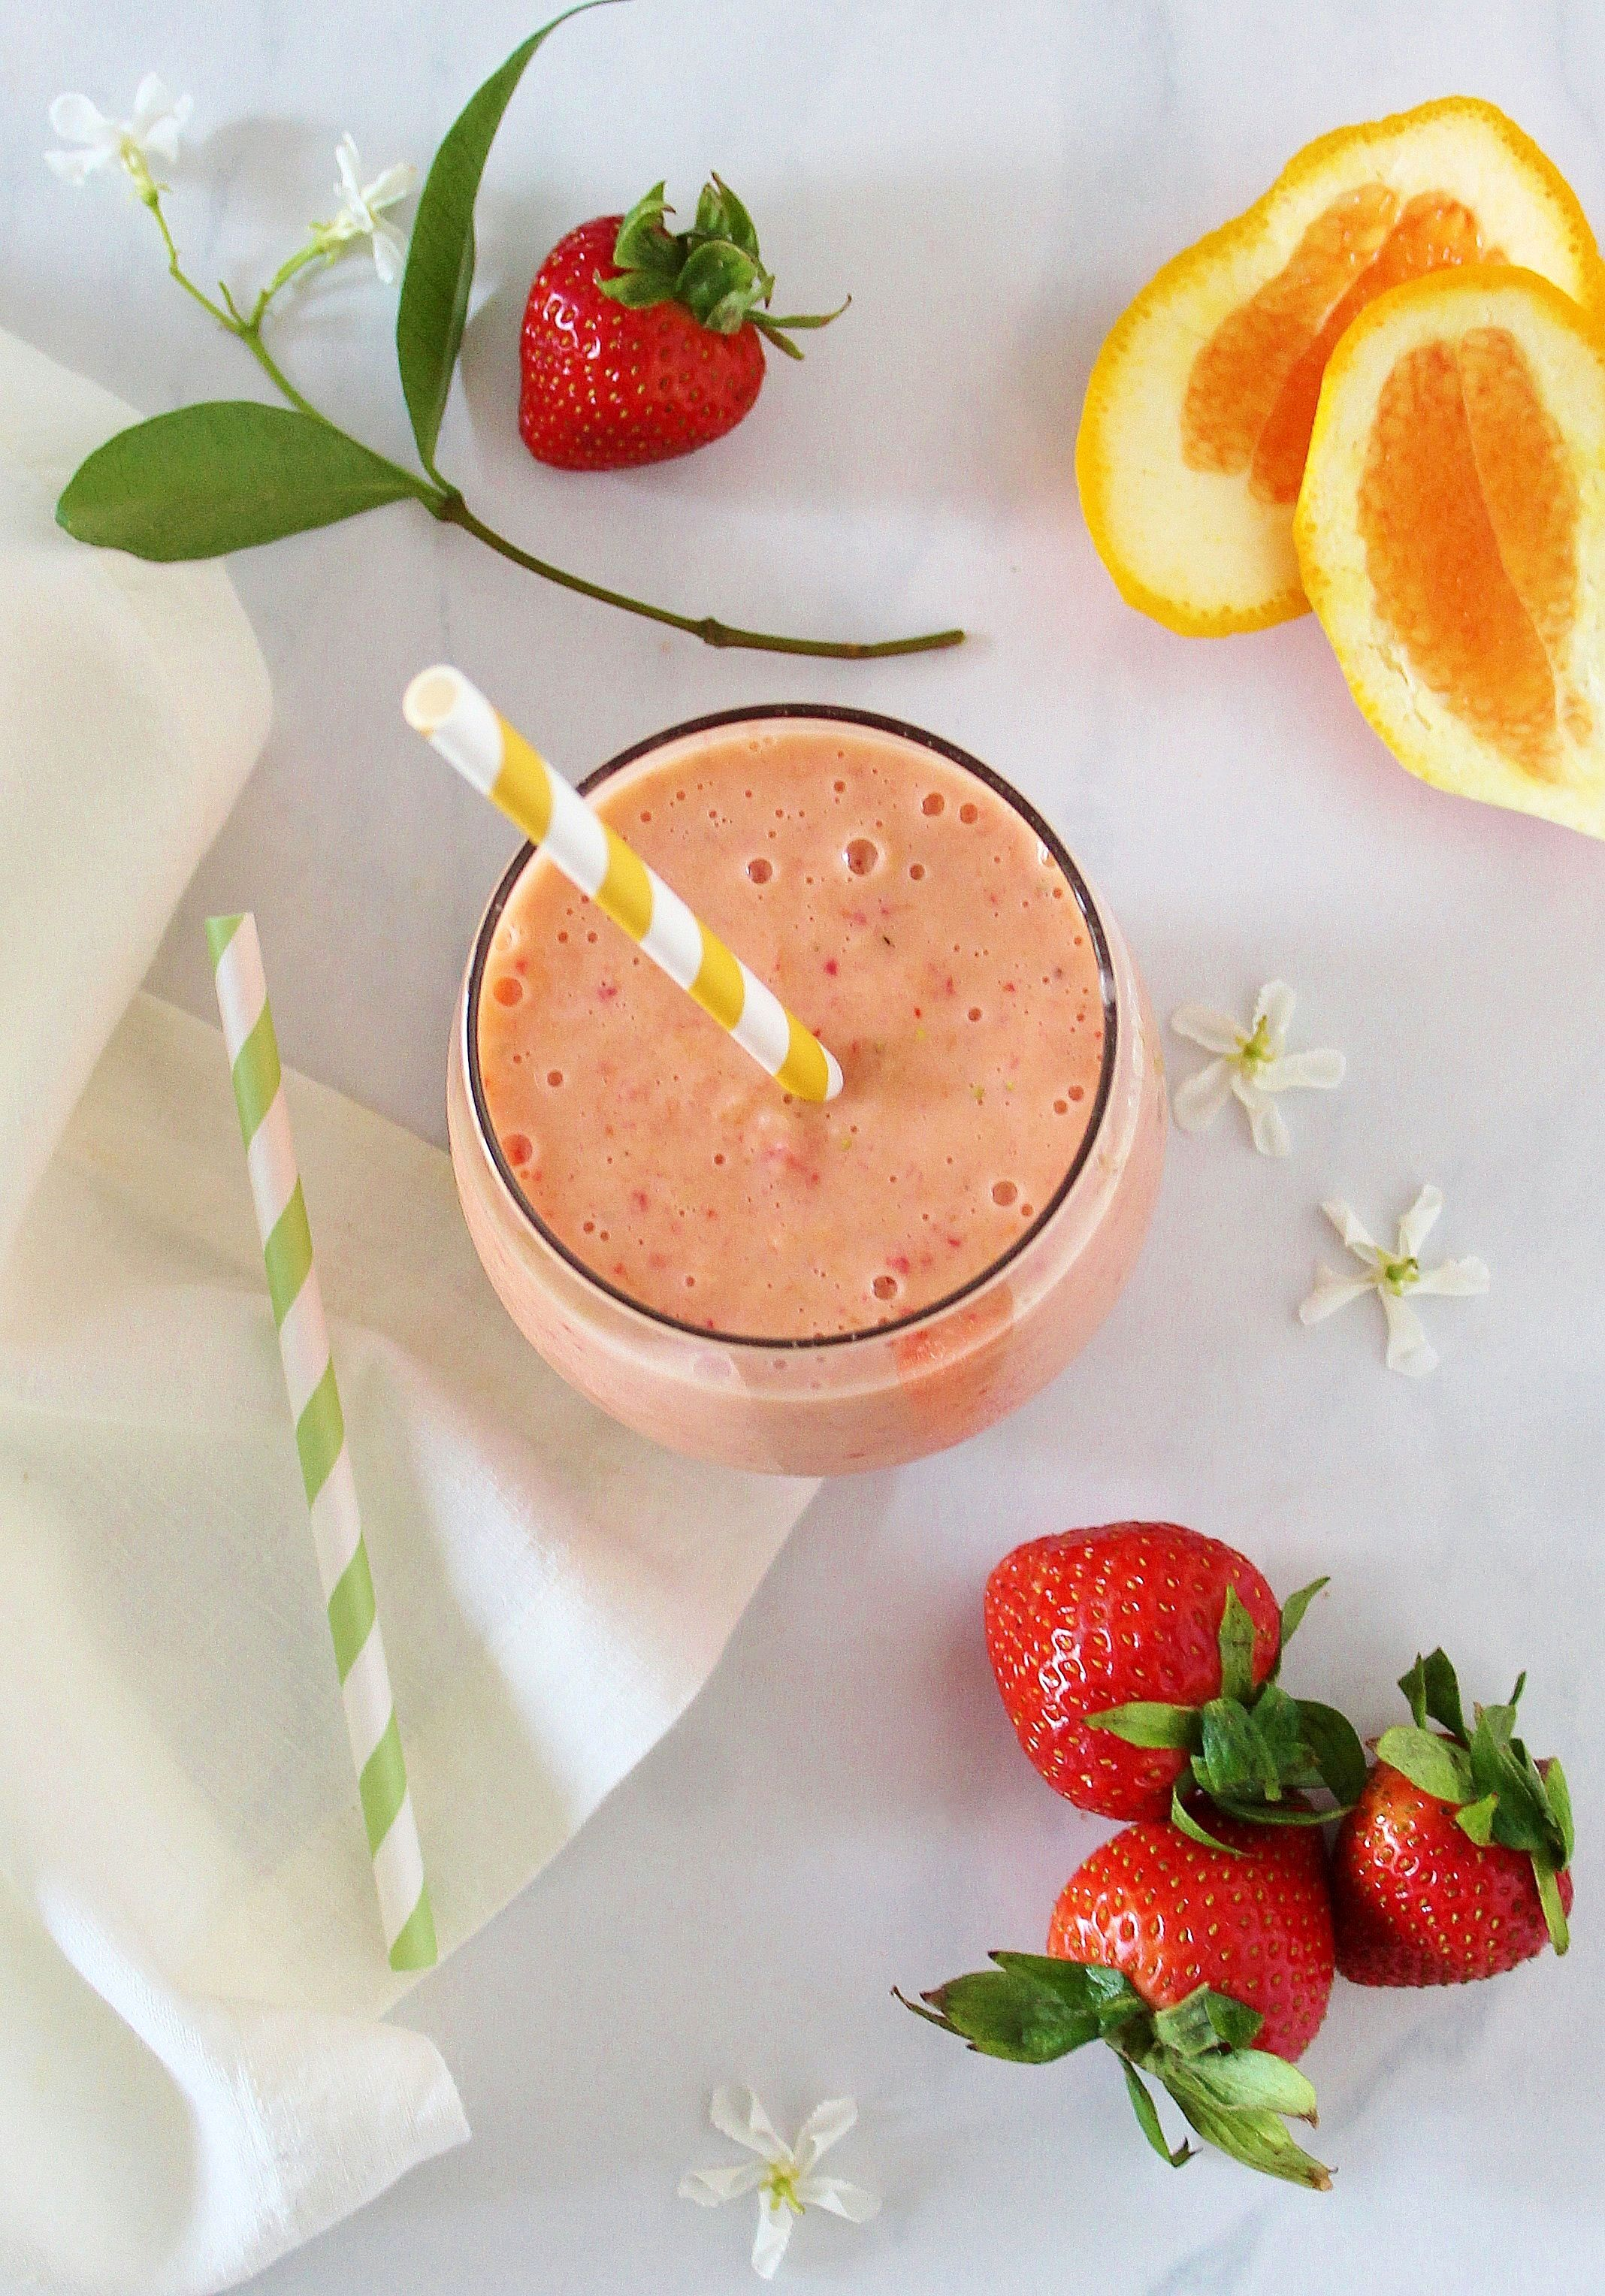 Afternoon Boost Smoothie with Hemp & Cara Cara